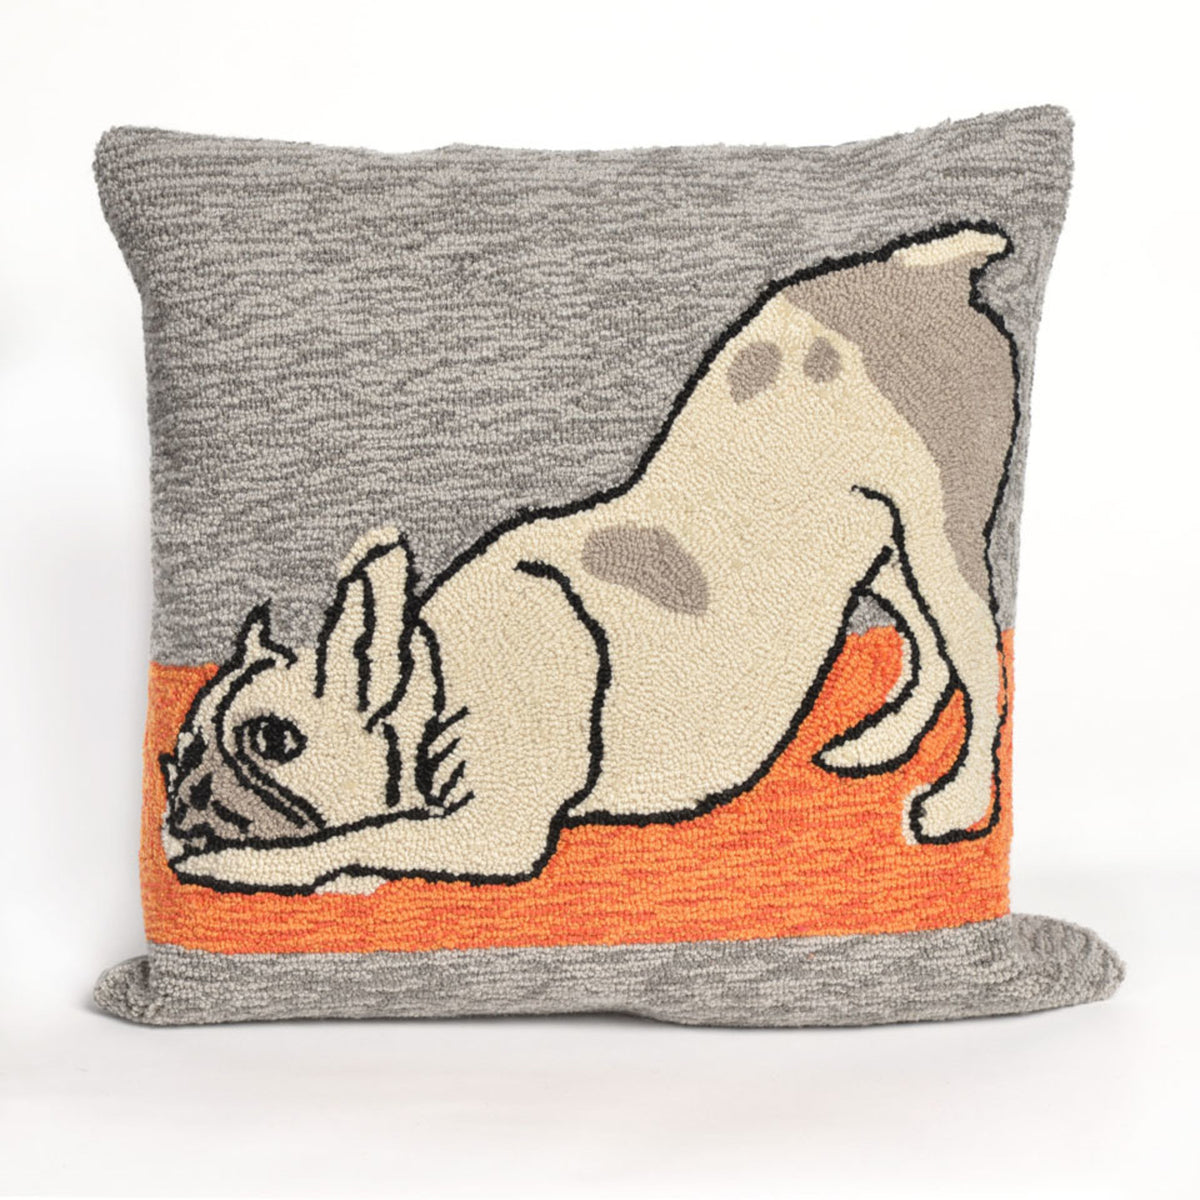 Frontporch Yoga Dog Heather Pillows